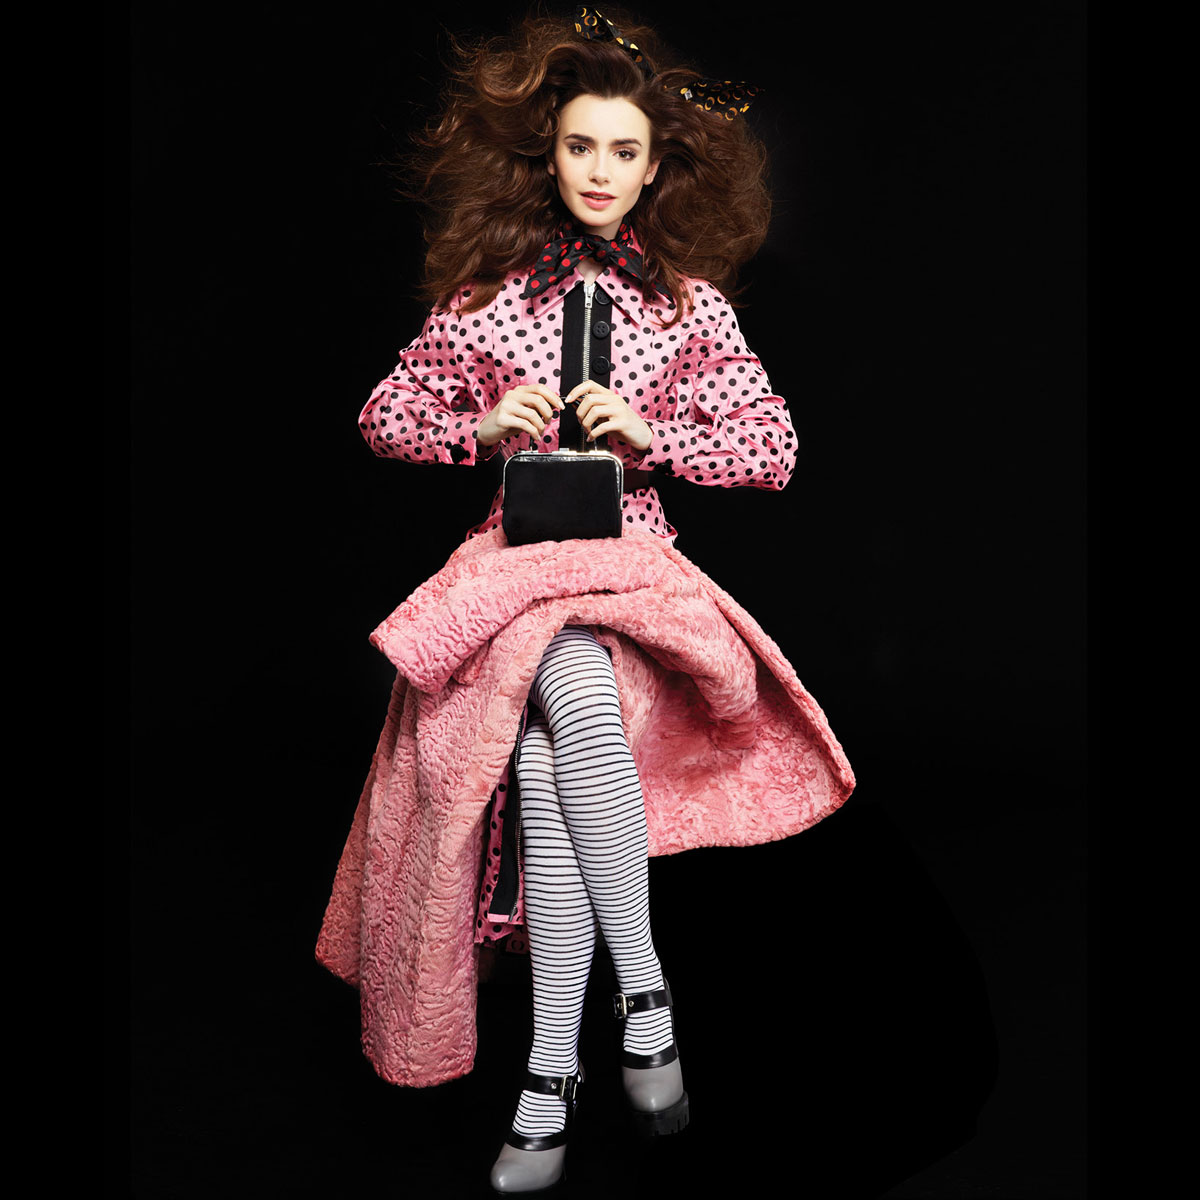 hbz-september-2013-carine-roitfeld-collections-lily-collins-xln.jpg